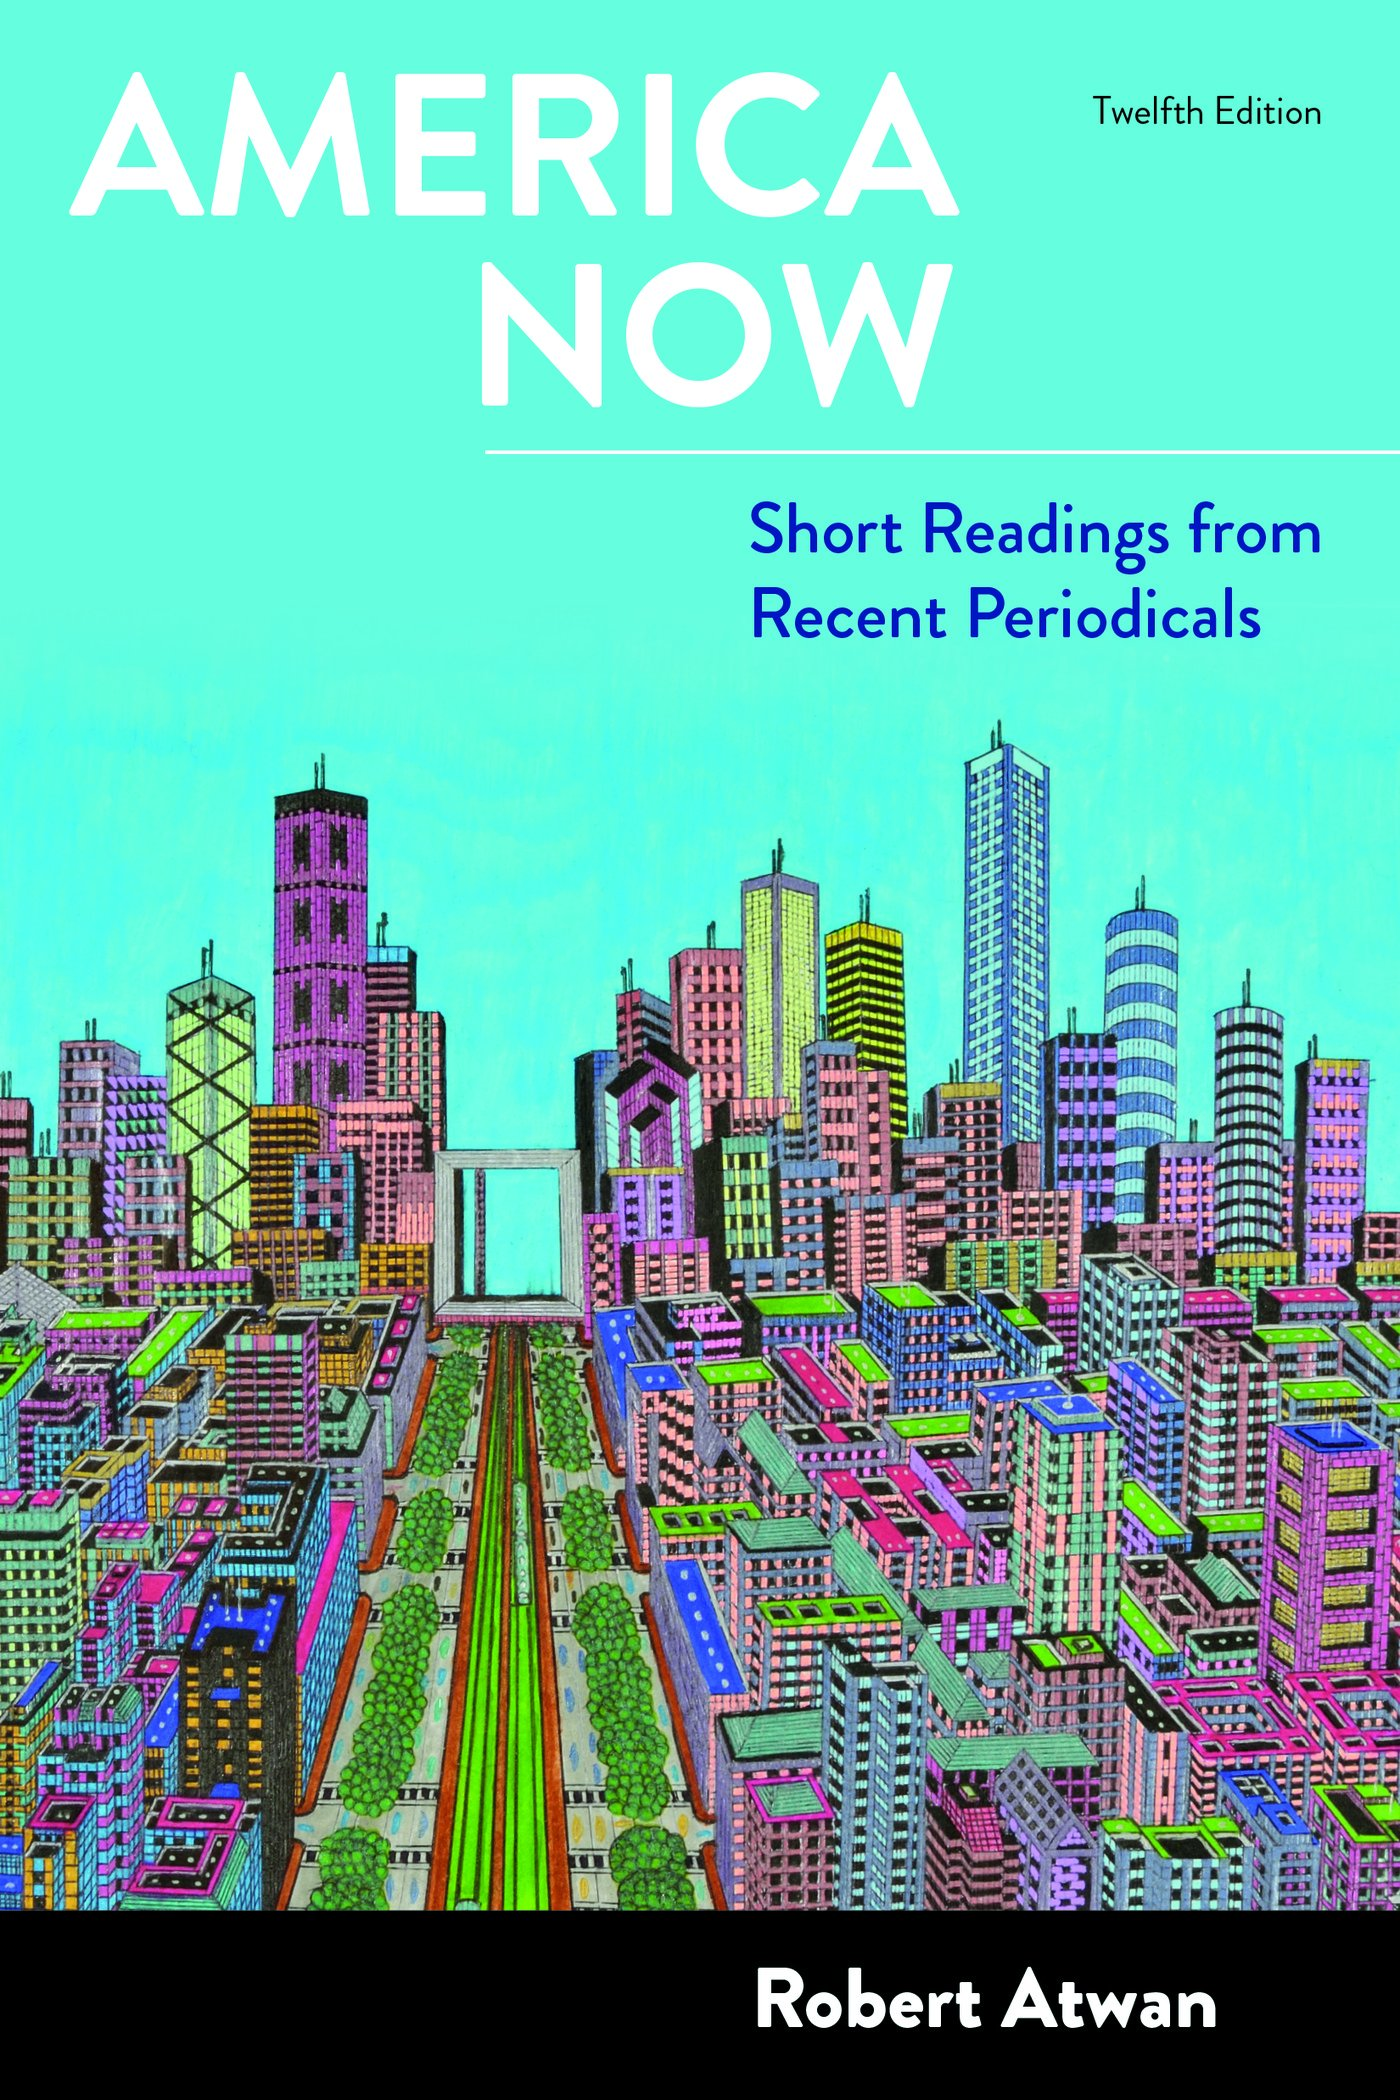 America Now: Short Readings from Recent Periodicals by Atwan Robert